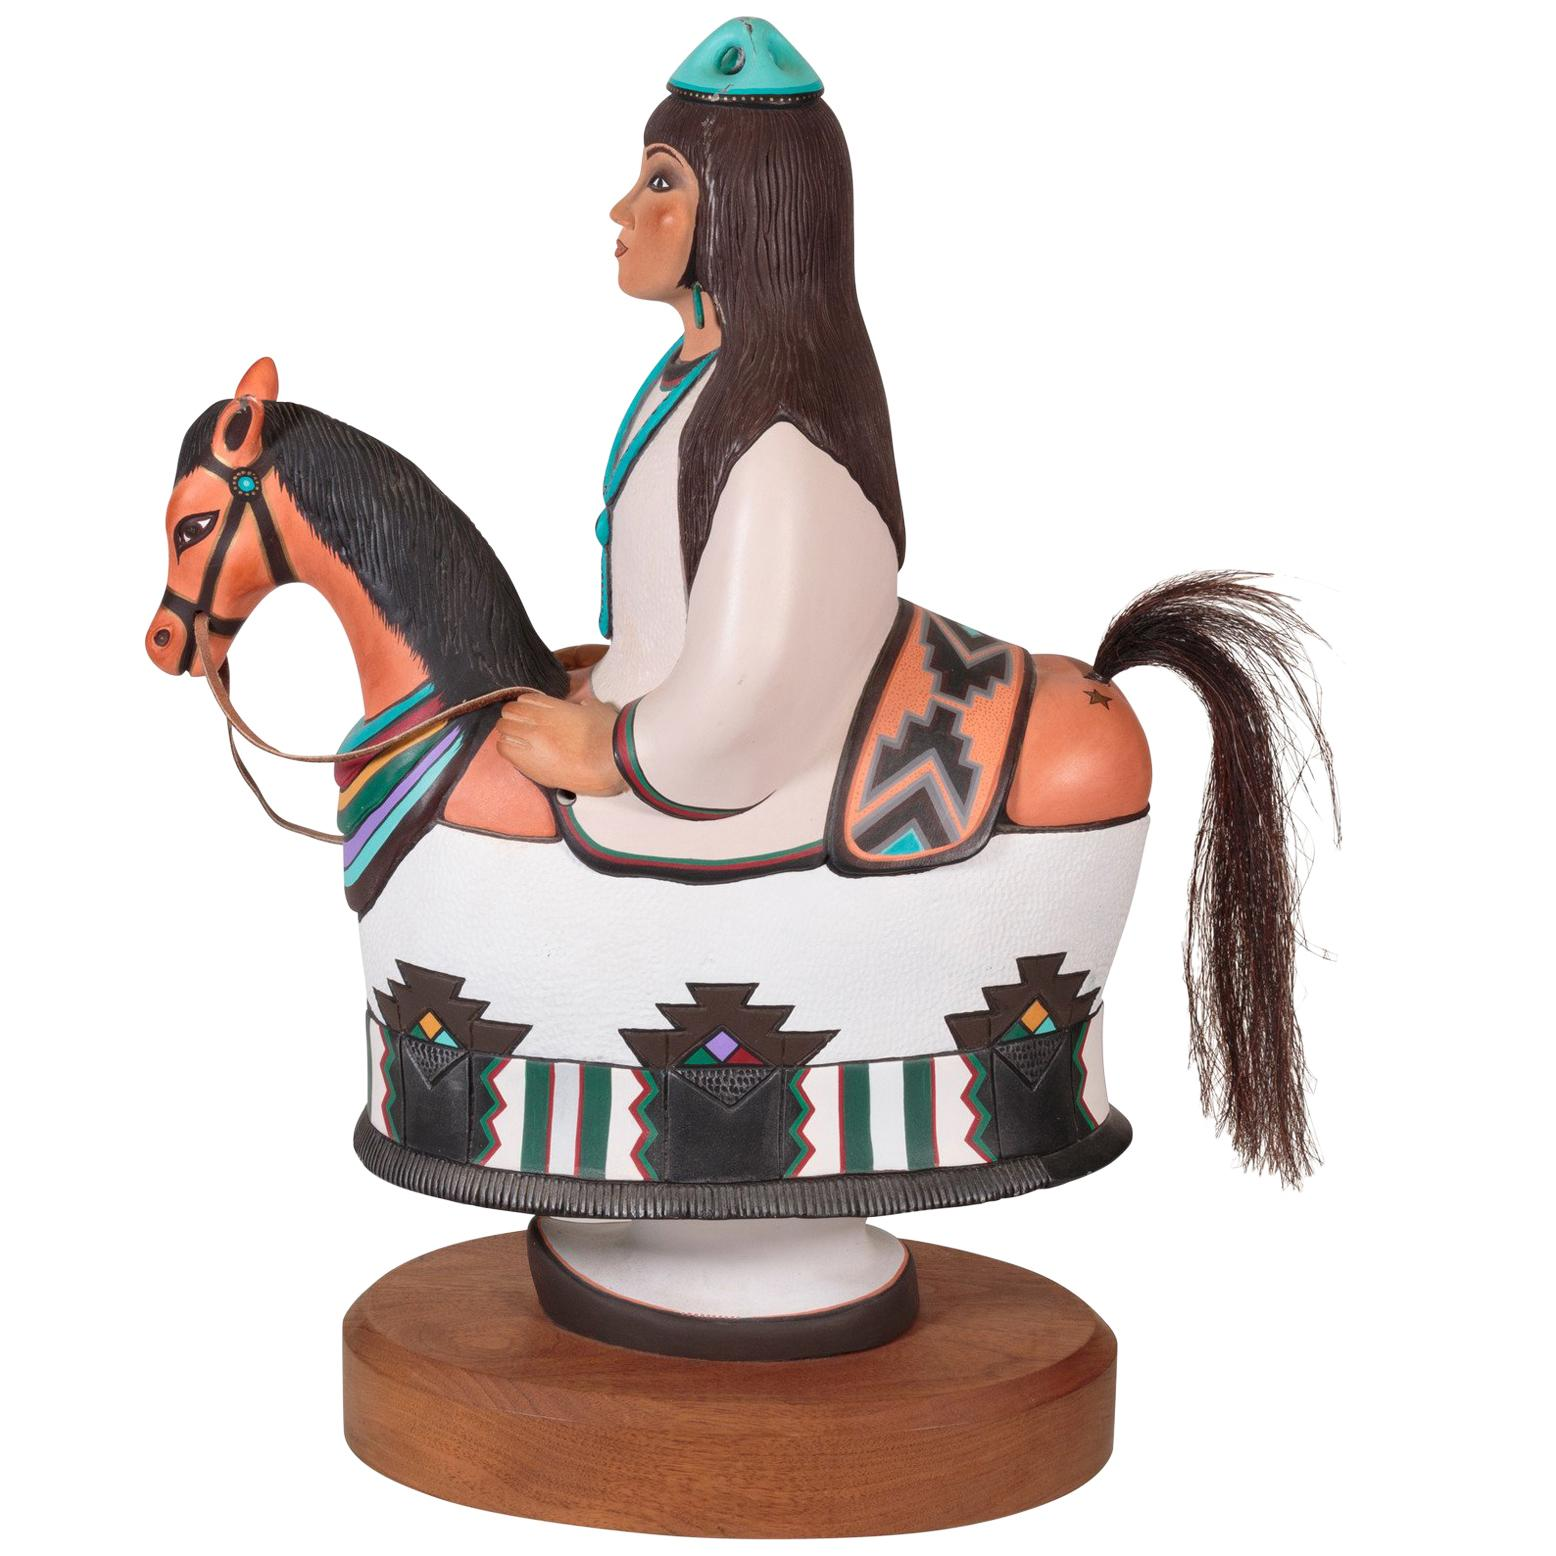 Lady on a Horse Painted Bronze Sculpture by Estella Loretto